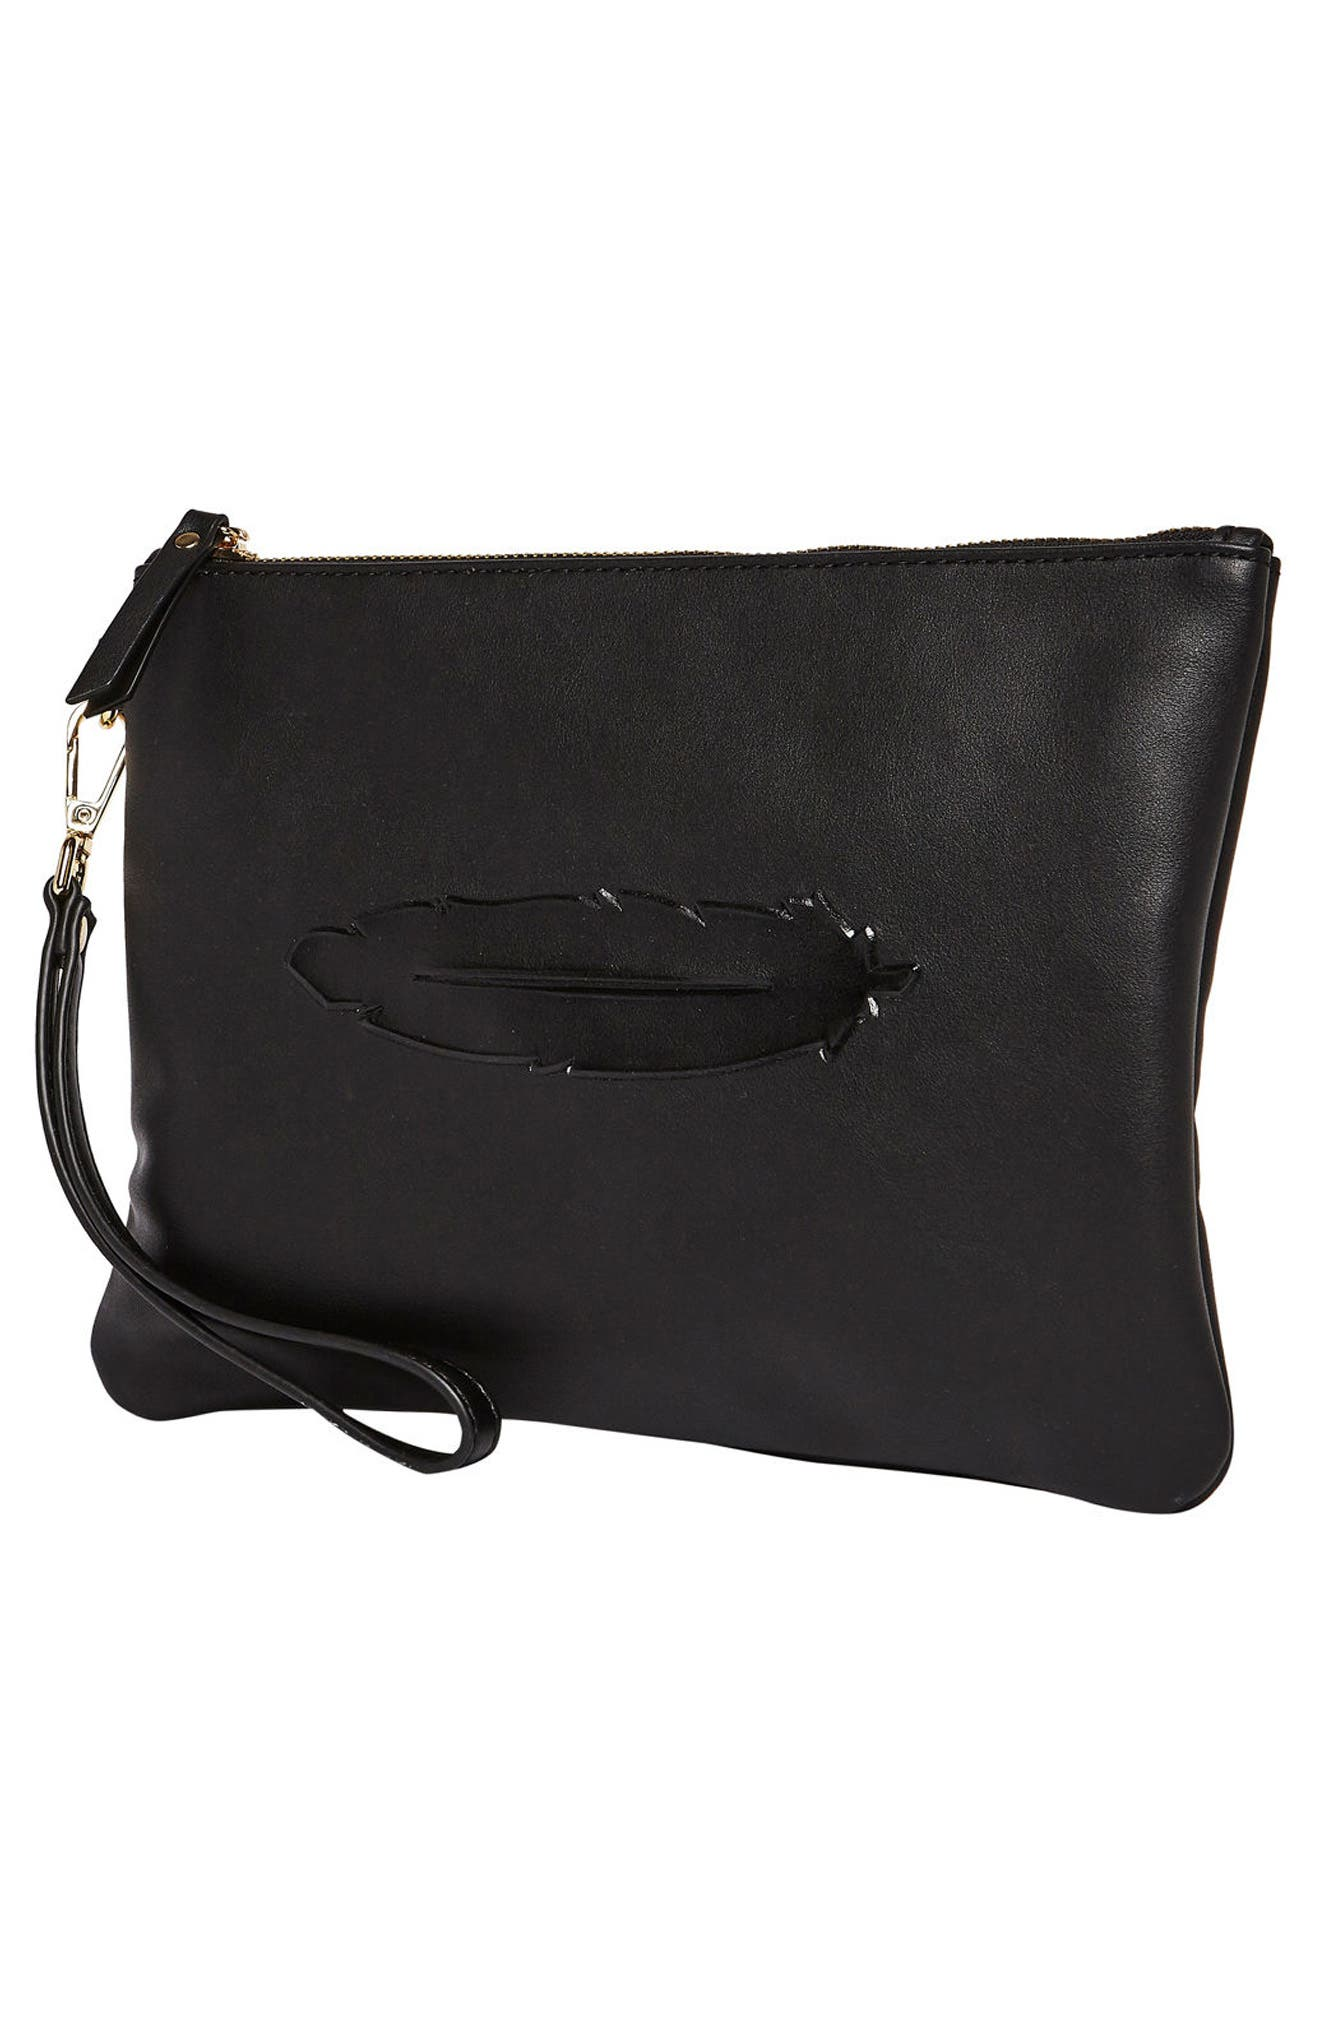 Clutch to Dream Vegan Leather Clutch,                             Alternate thumbnail 2, color,                             Black